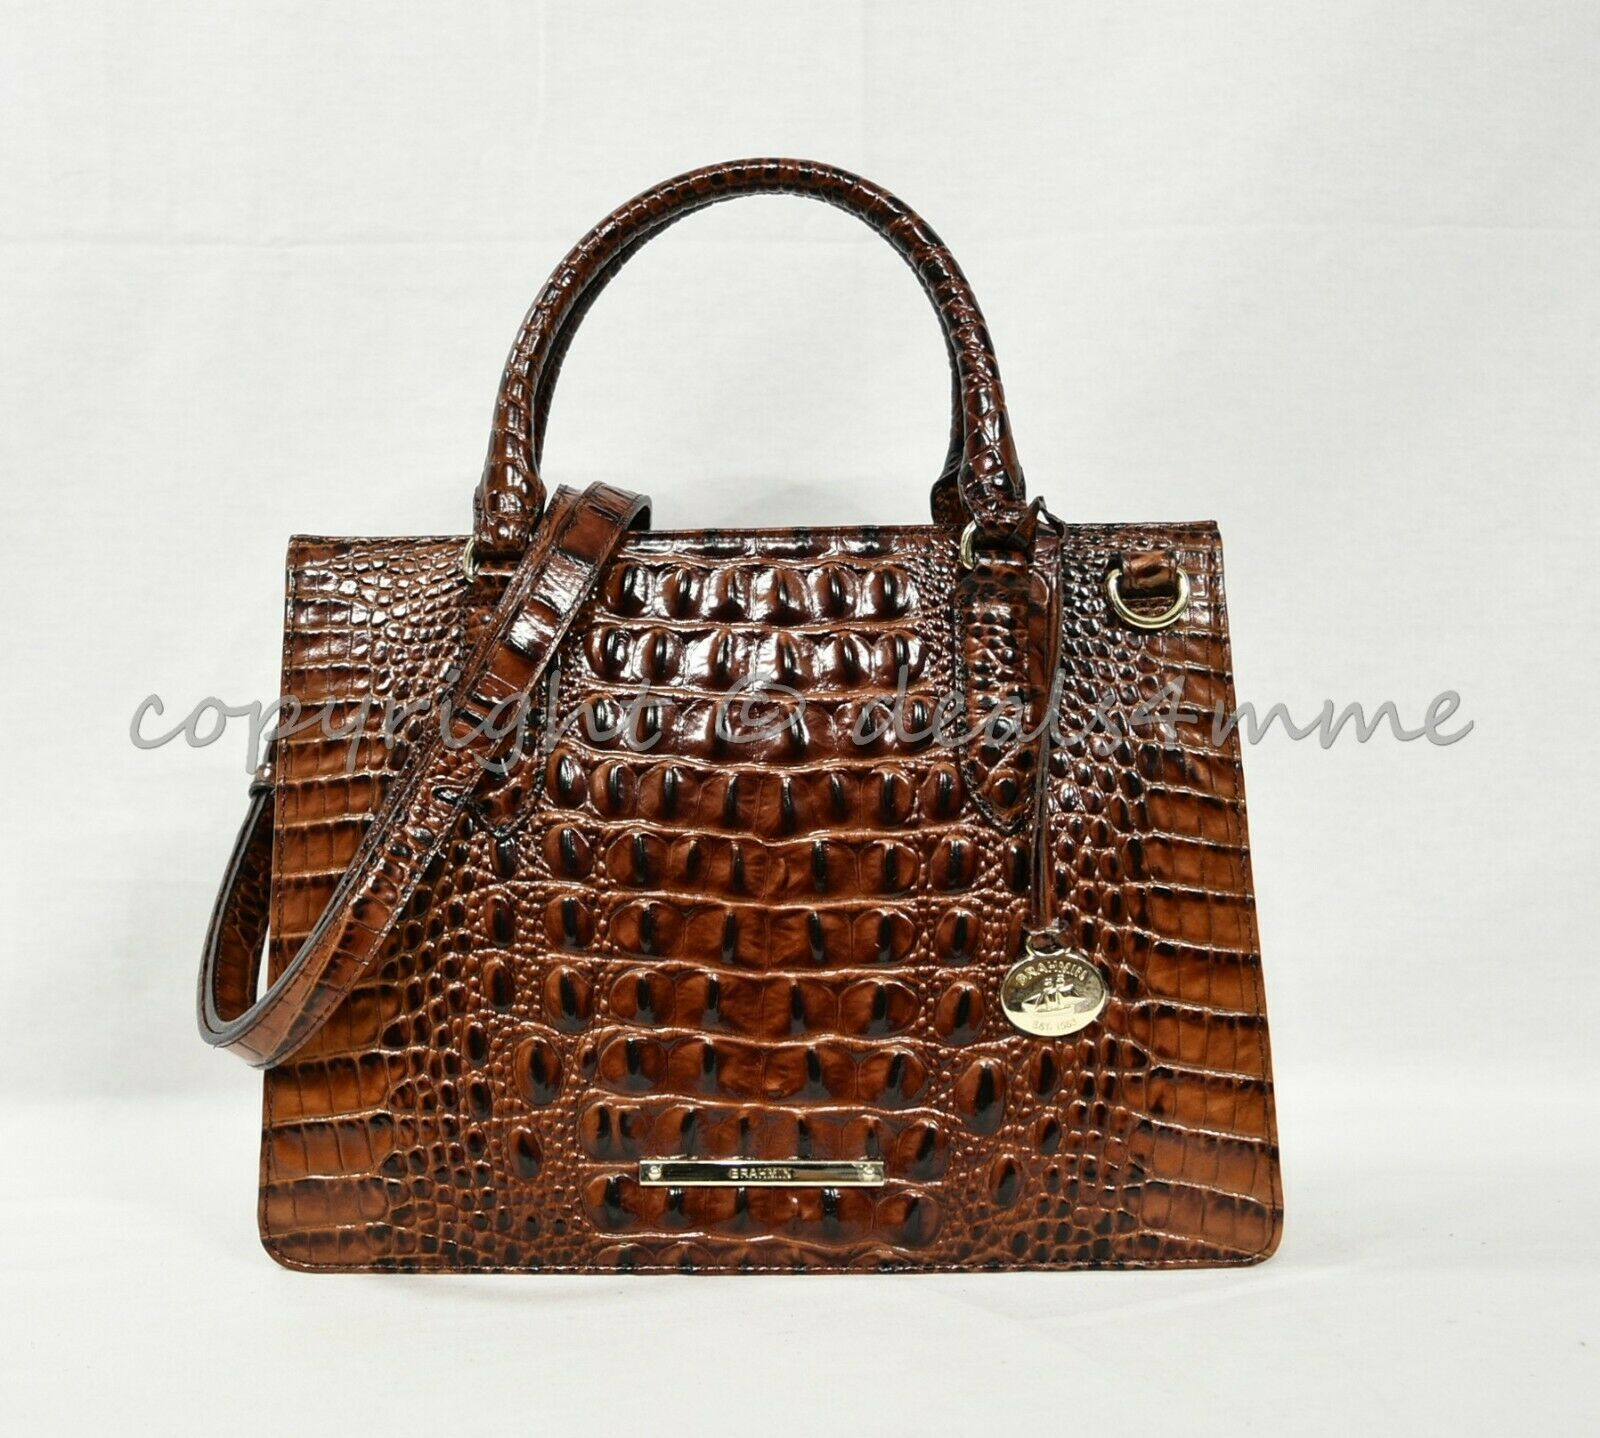 Primary image for NWT Brahmin Small Camille Leather Satchel/Shoulder Bag in Pecan Melbourne